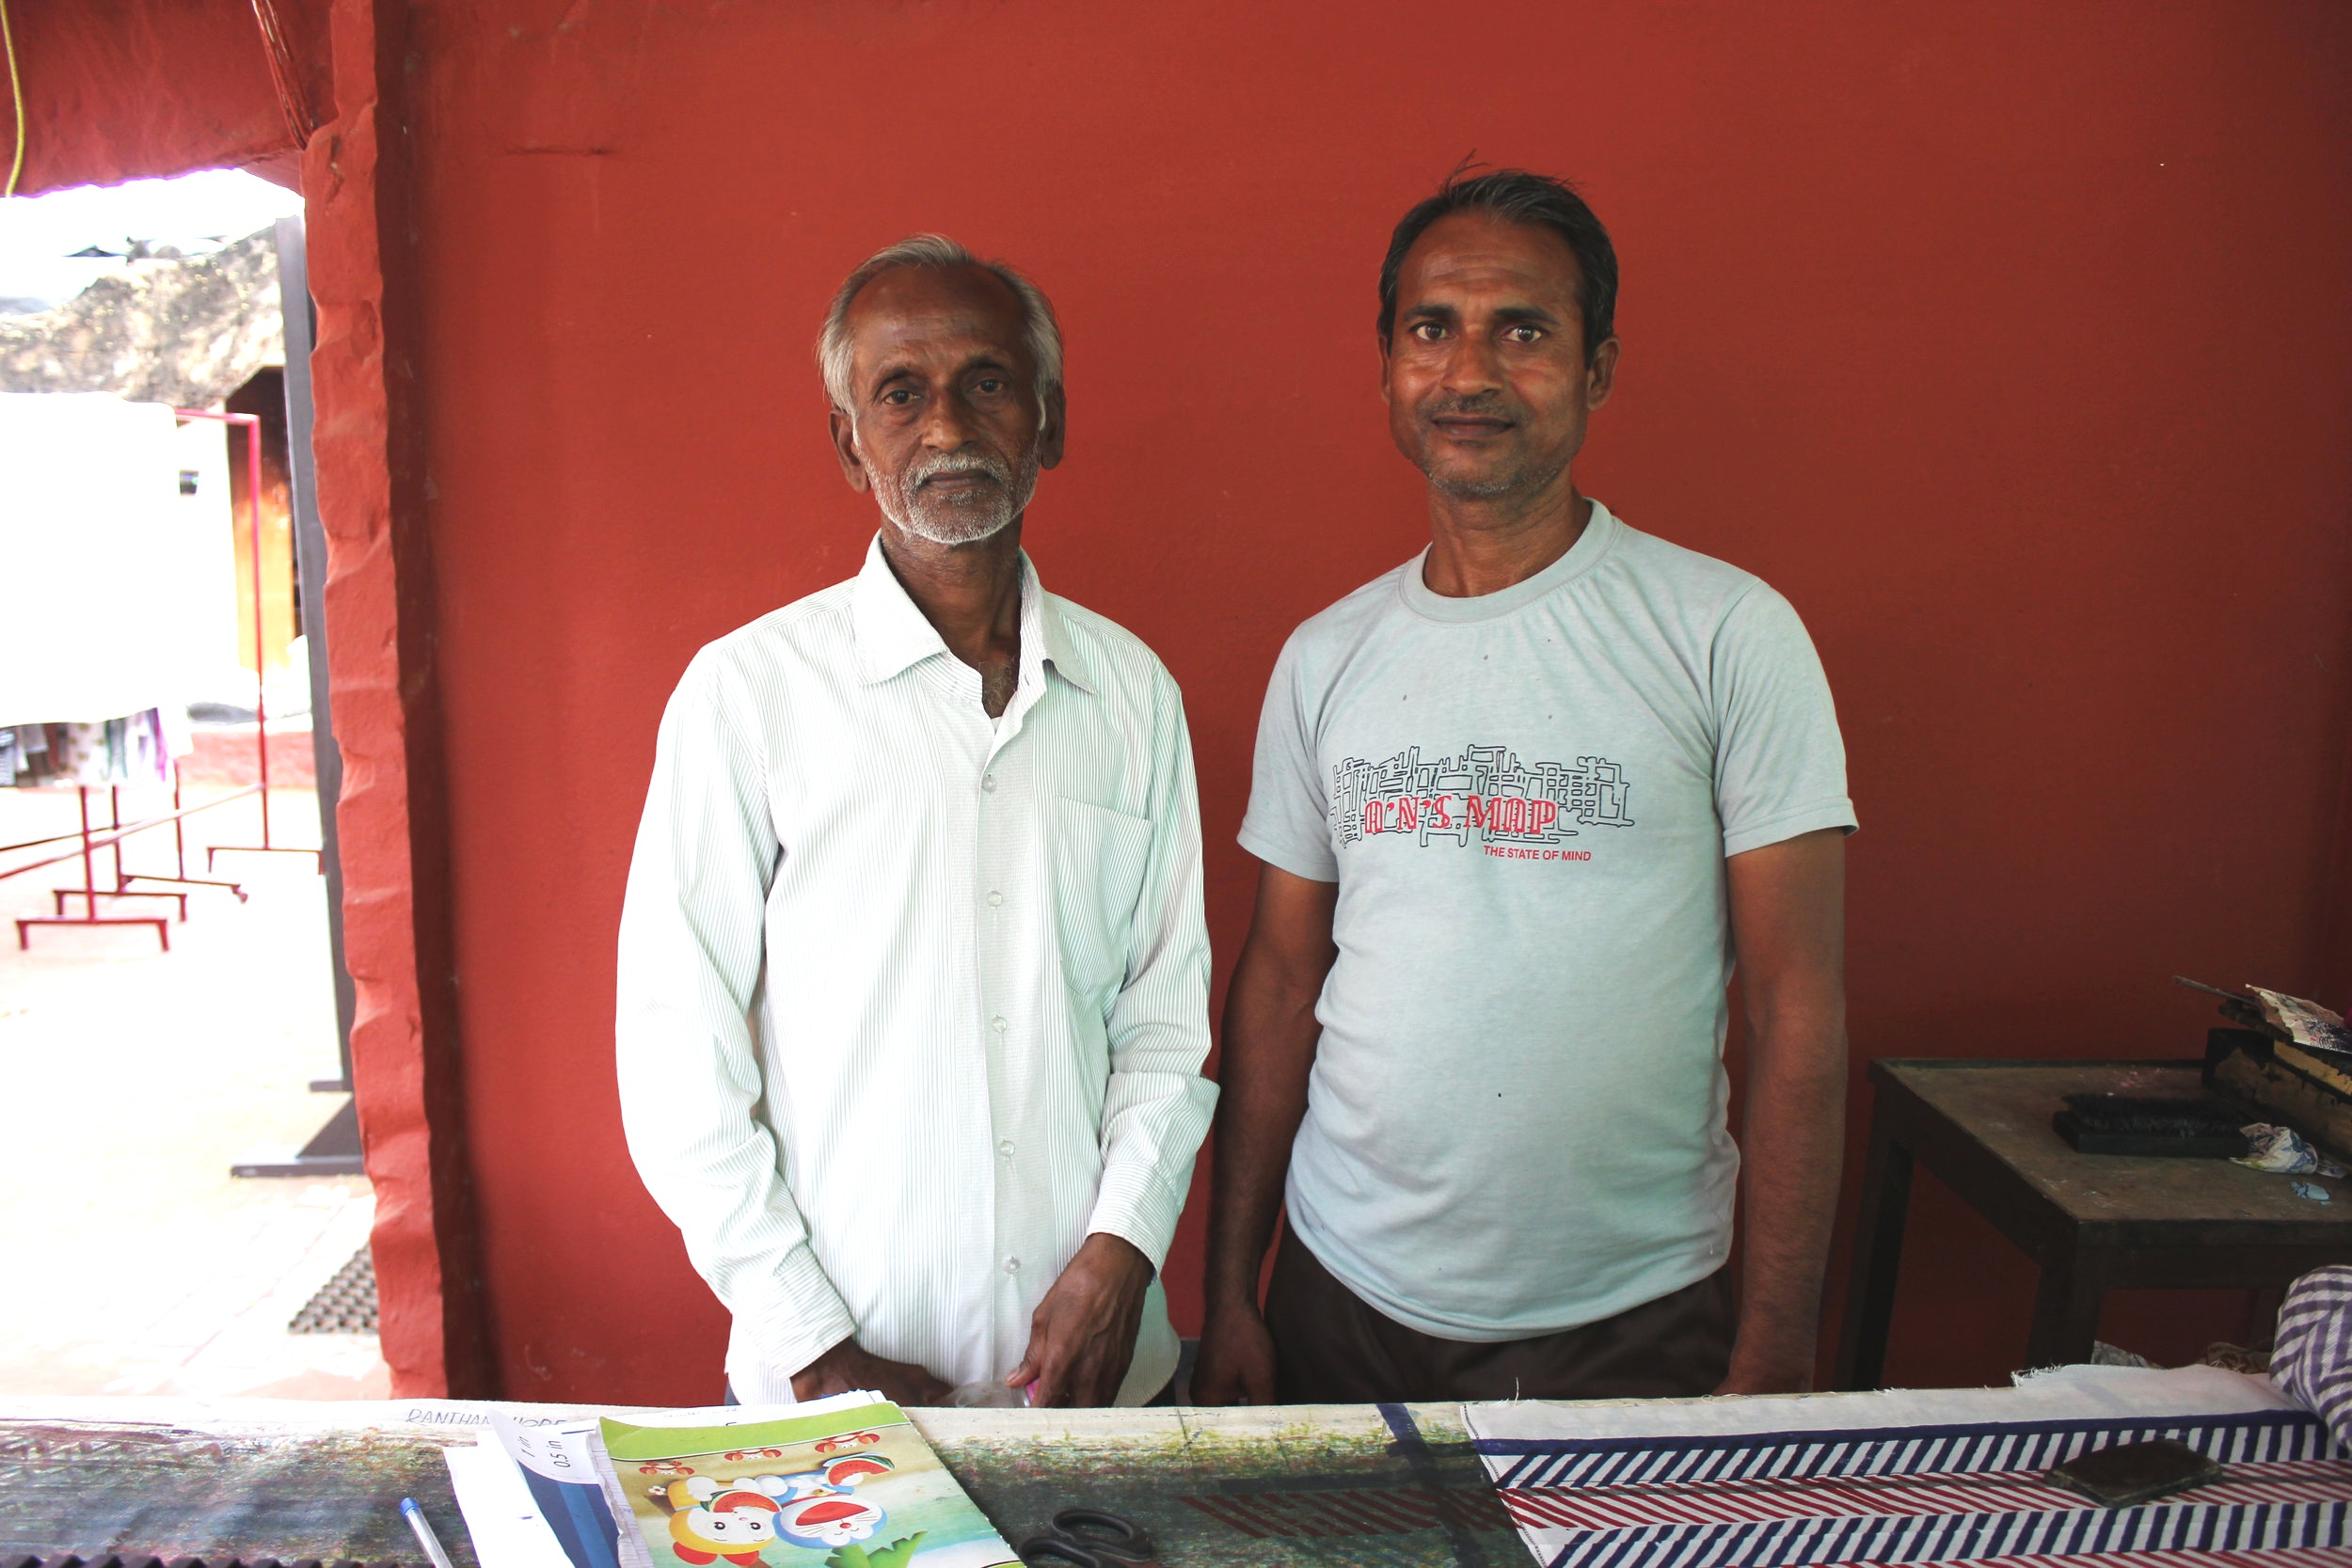 Gopal ji (left) is an expert dye mixer who excels at matching colors. Kanhaiya (right) is a skilled and patient hand block printer that worked with us on all 3 of our designs.